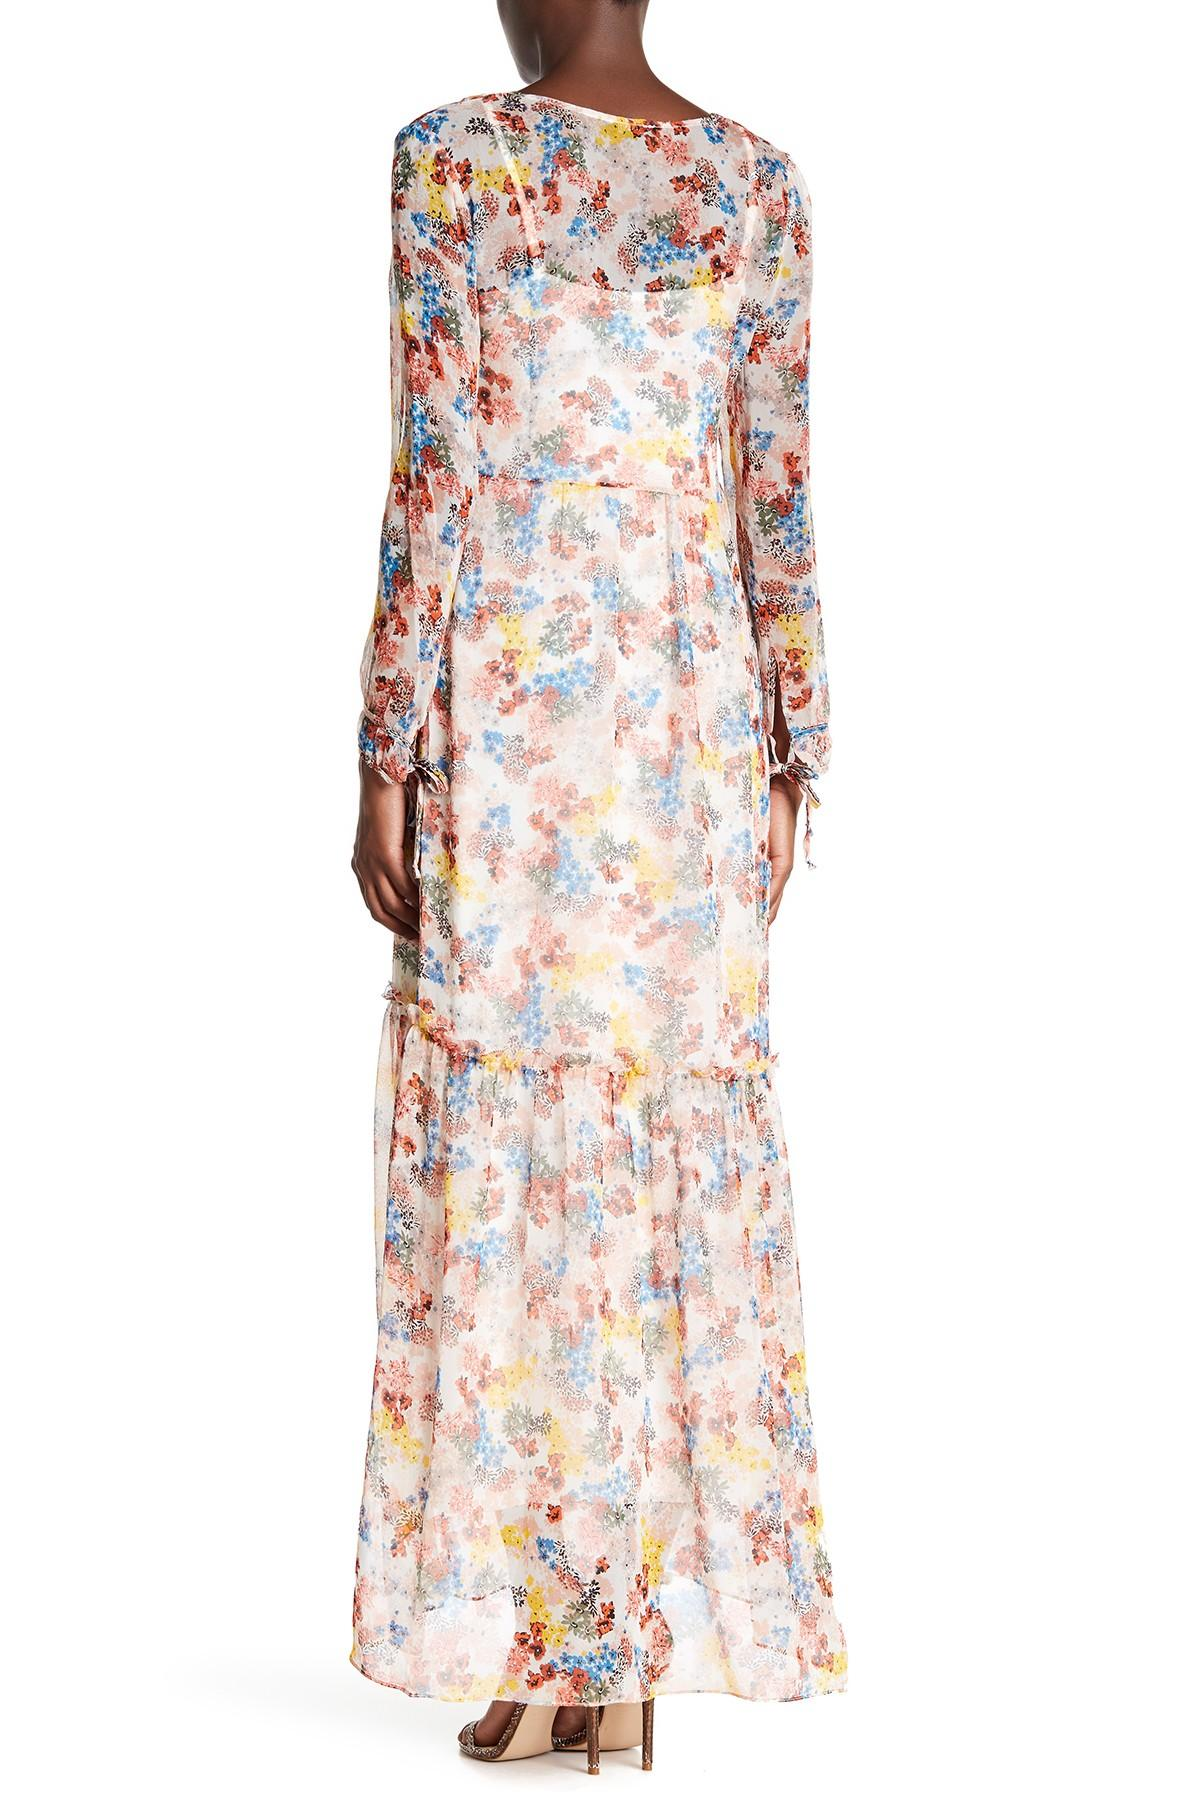 Lyst Ella Moss Long Sleeve Maxi Dress In Natural